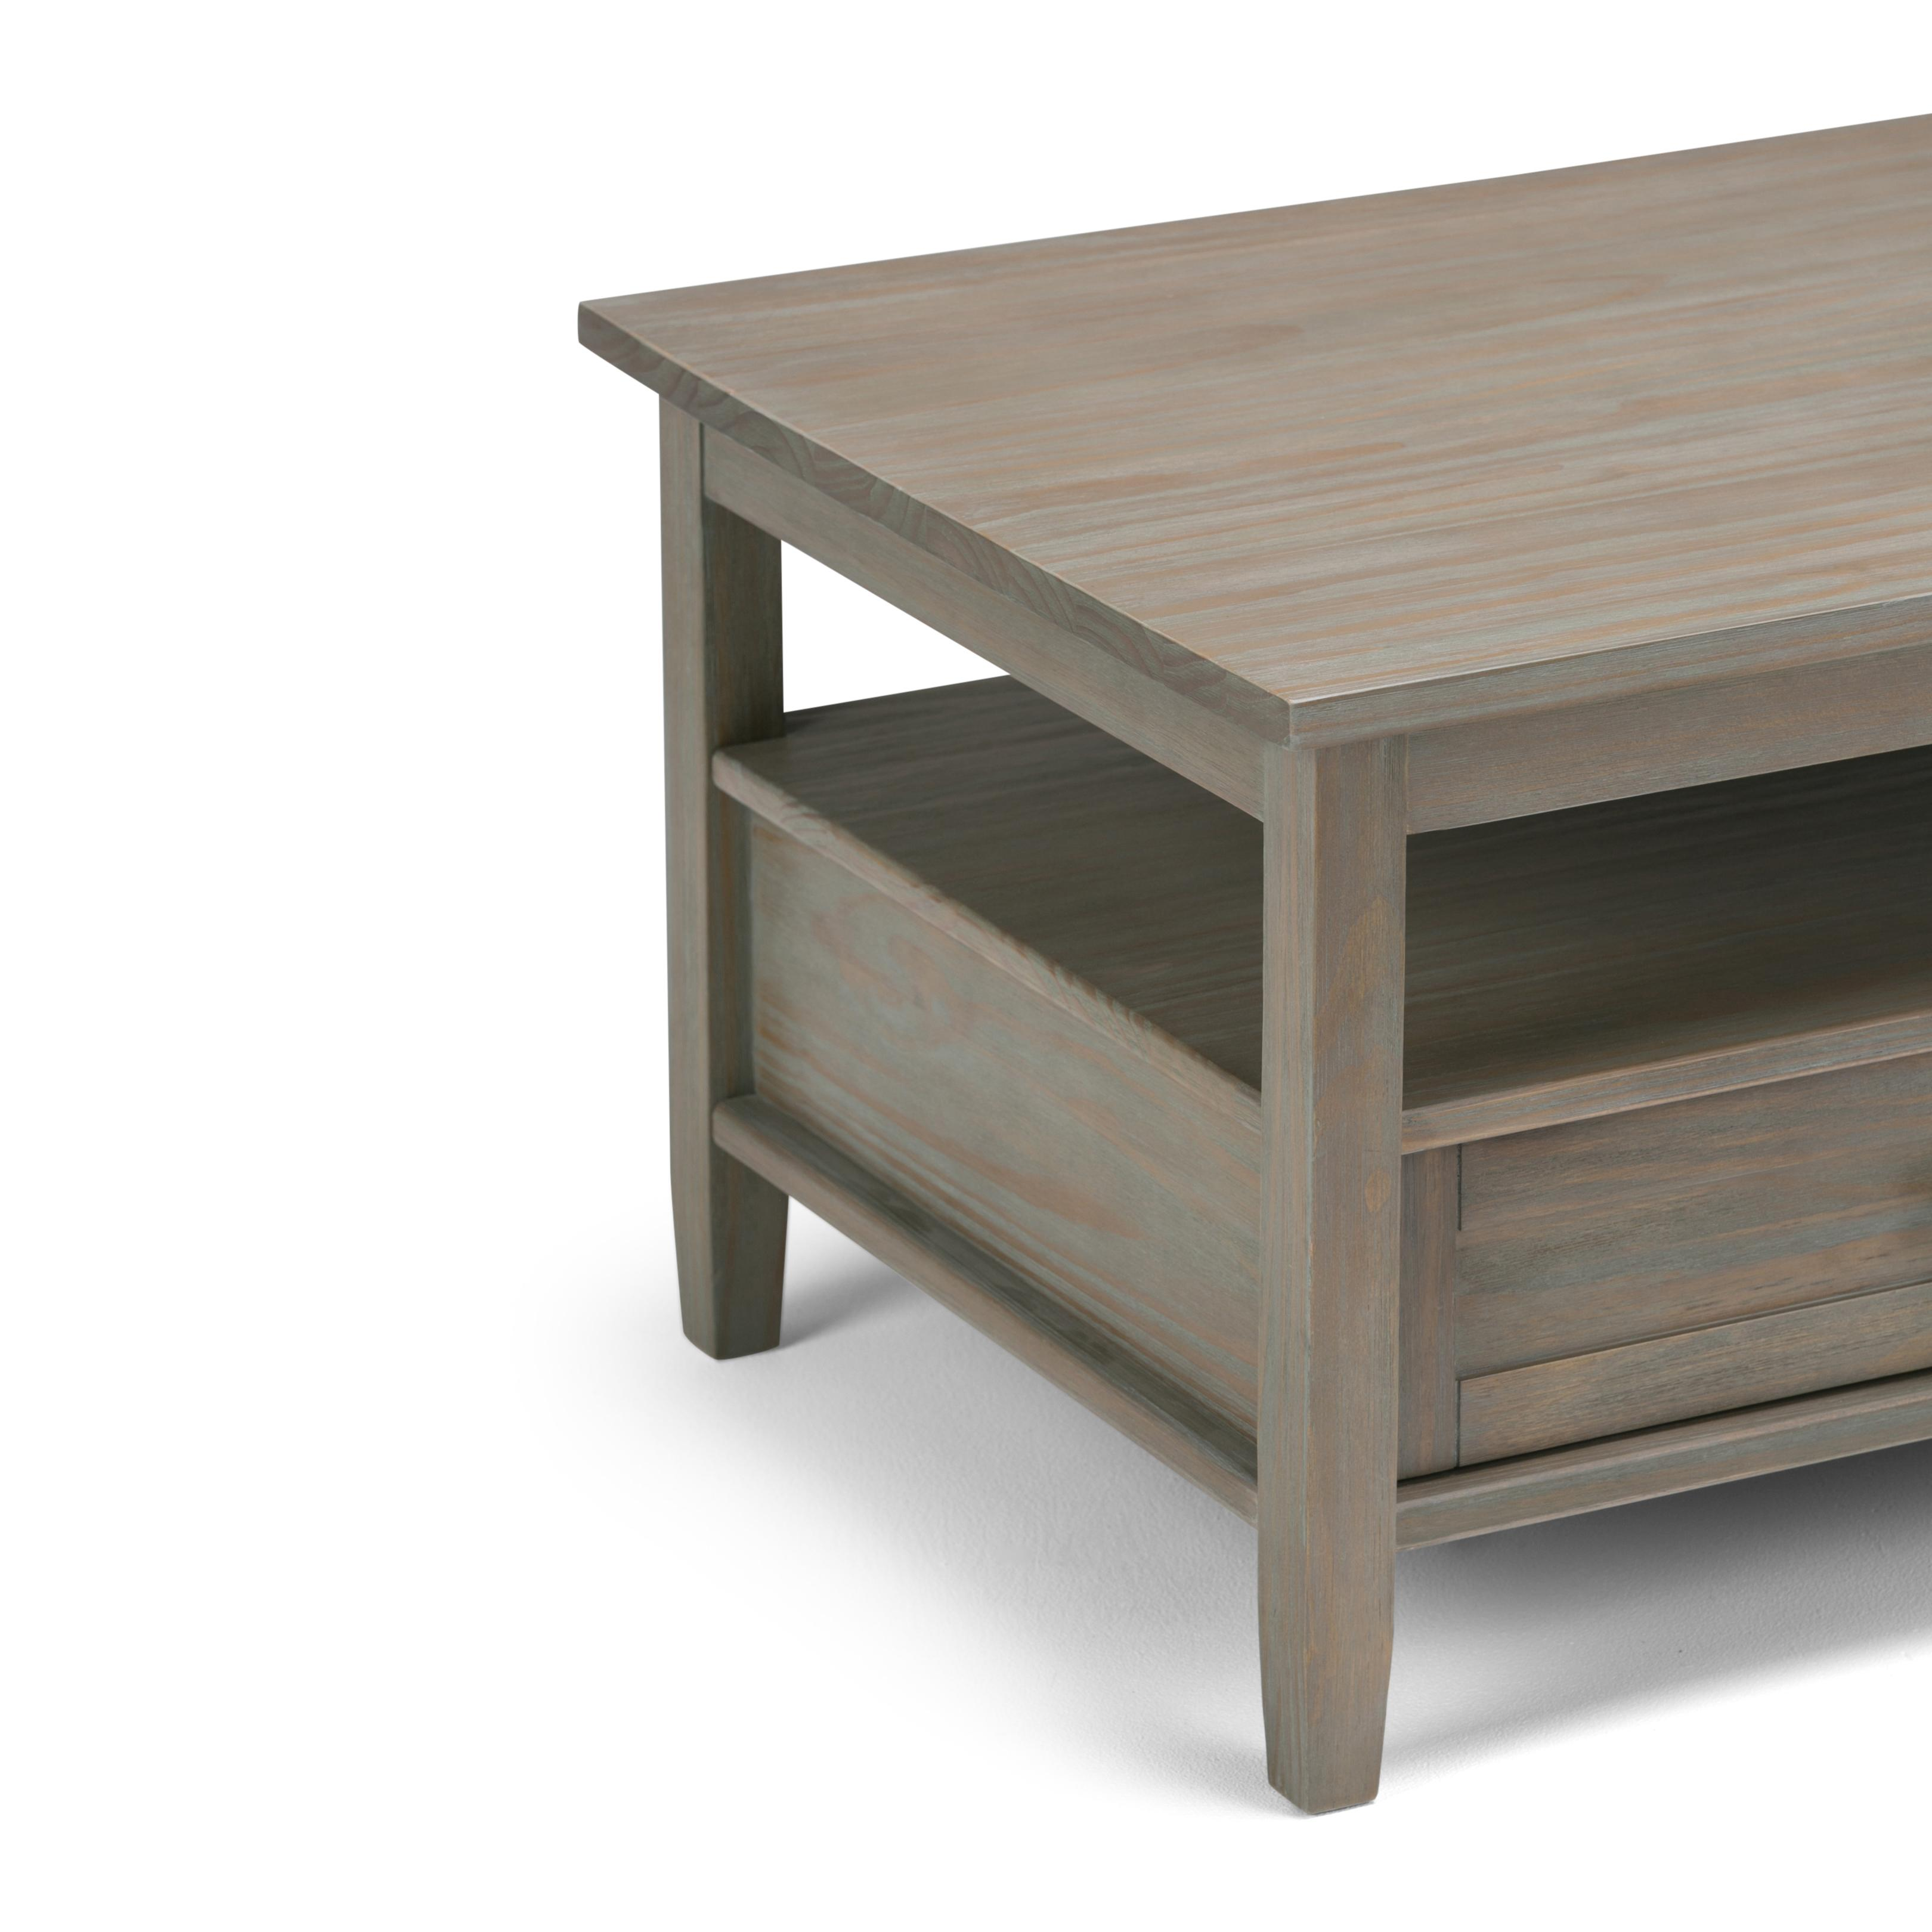 Amazon Linon Titian Rustic Gray Coffee Table Kitchen: Simpli Home Warm Shaker Solid Wood Coffee Table